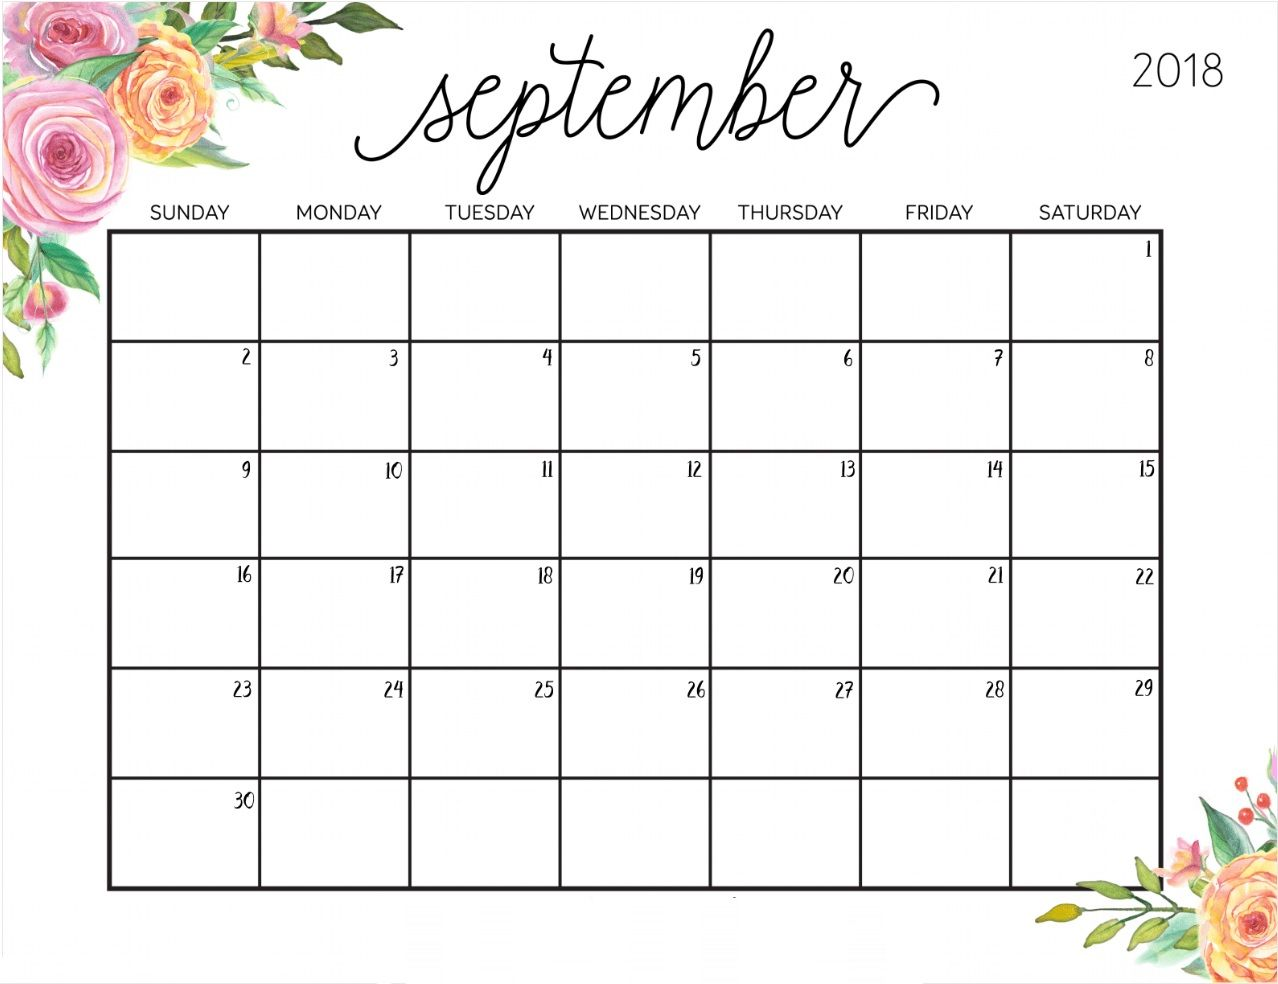 2018 Planning Calendar Template With Images August Calendar